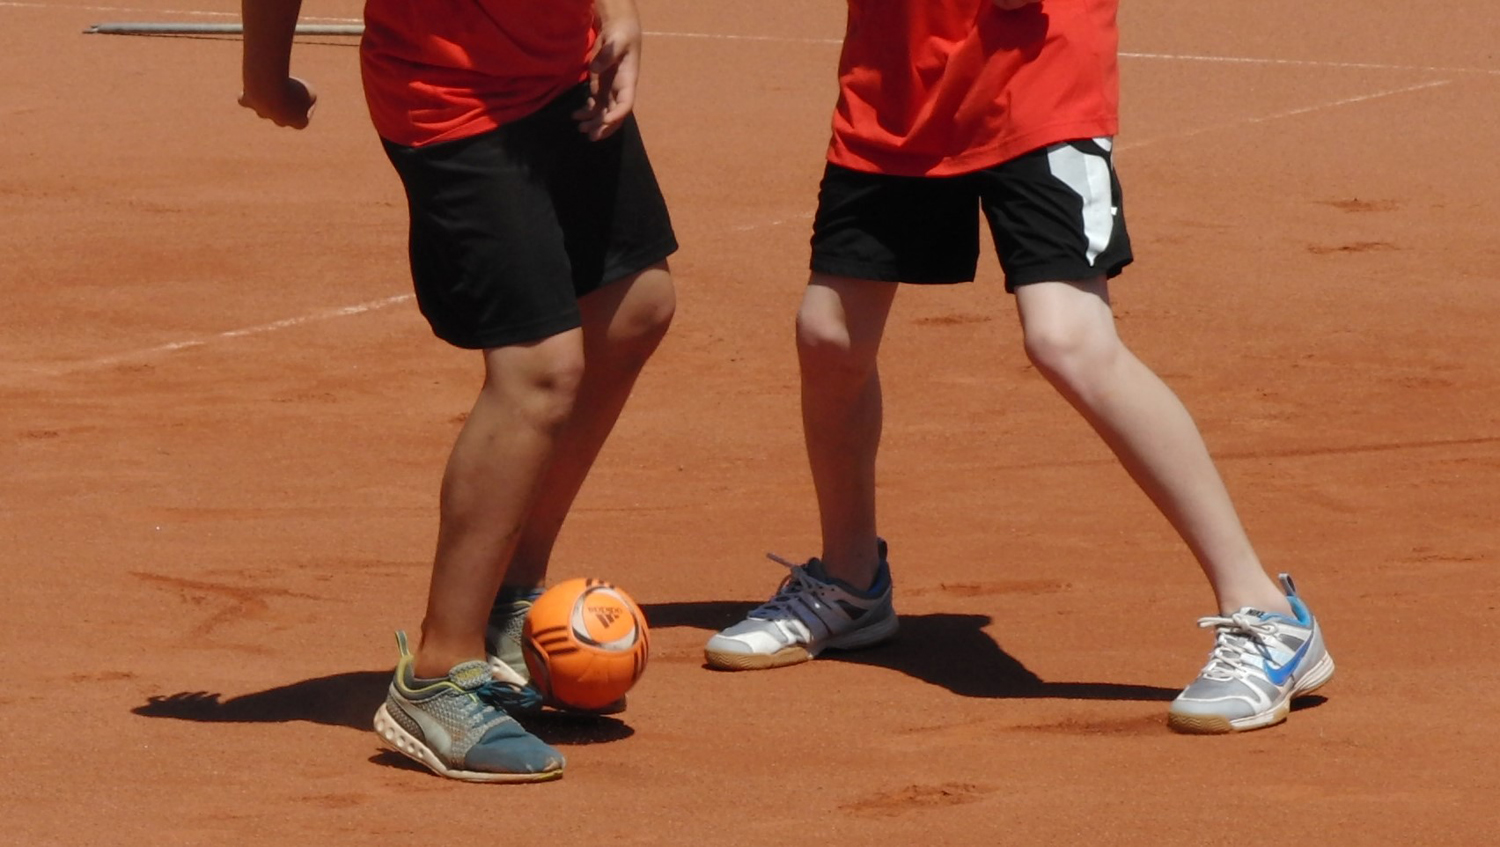 Tenniscamp Sweetspot bei T65_2016 (209)